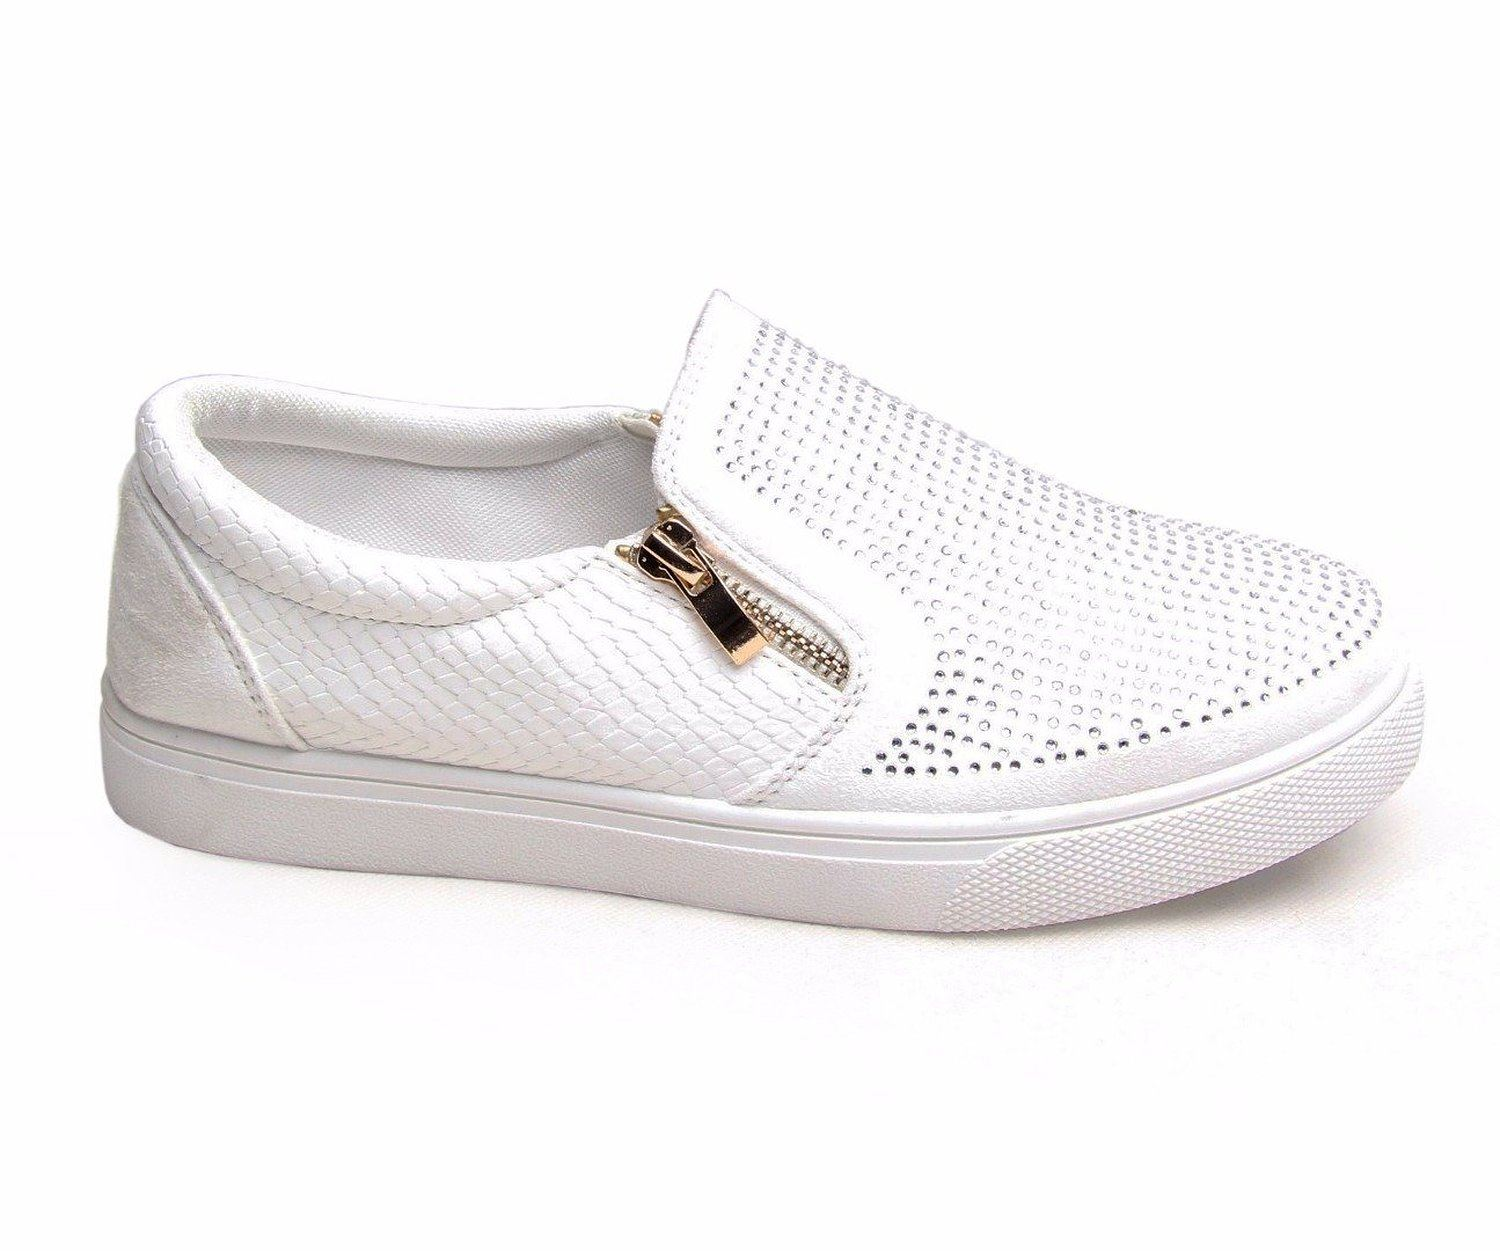 Womens Zip Diamante Trainers Croc Skin Slip On Skater Sneakers Flats ... 046d7a01d